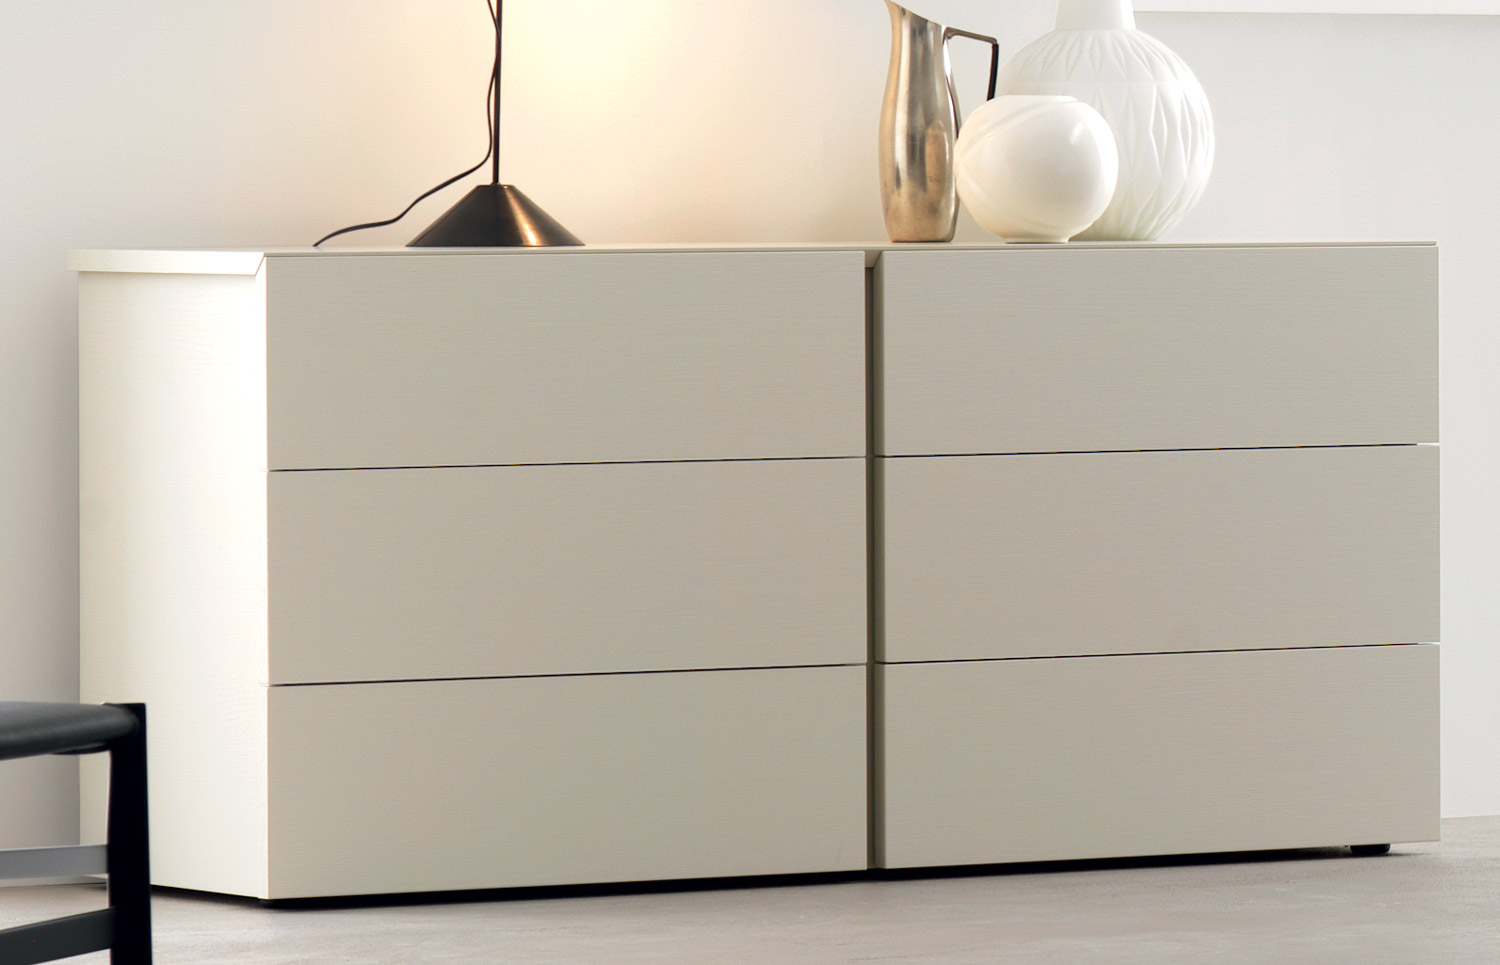 Bedsides and Chest of Drawers